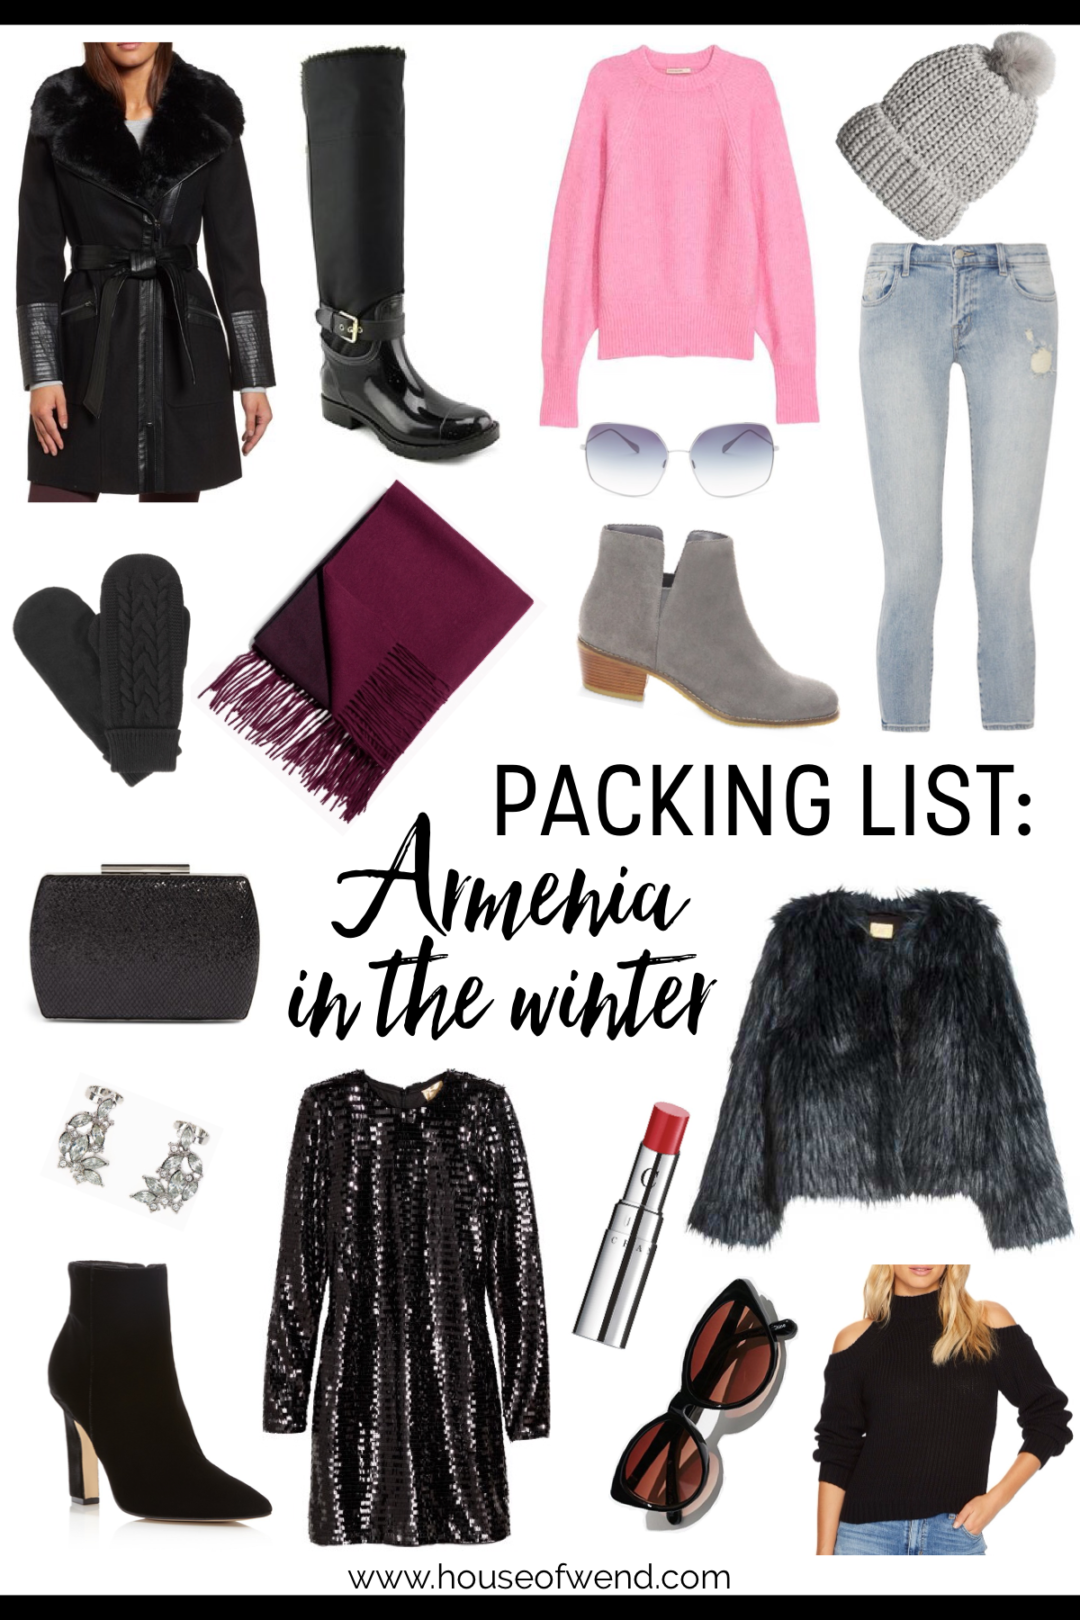 Packing list for Armenia in the winter